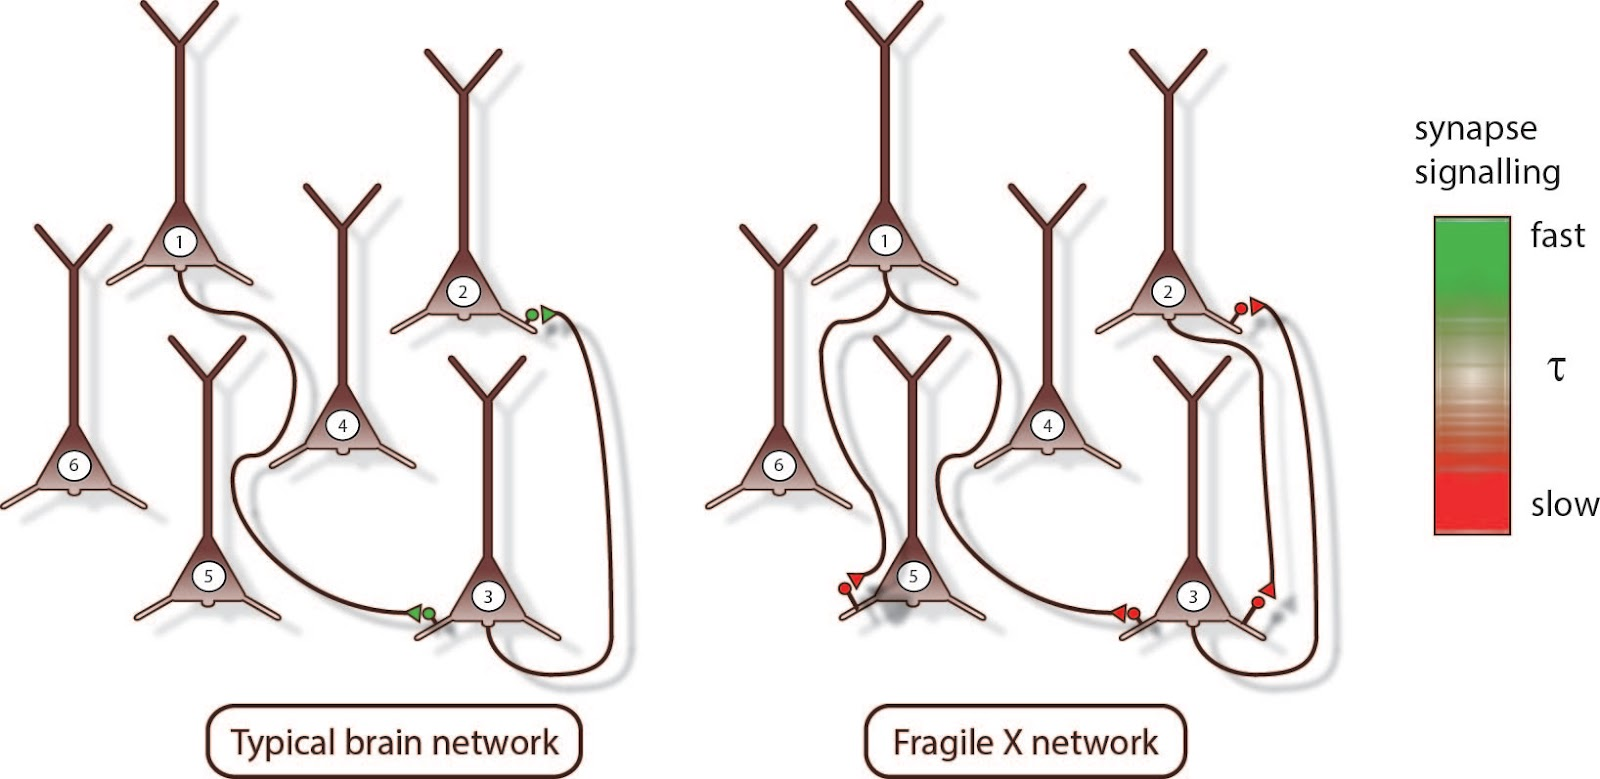 diagram of synapses in typical and fragile x brain networks [ 1600 x 779 Pixel ]